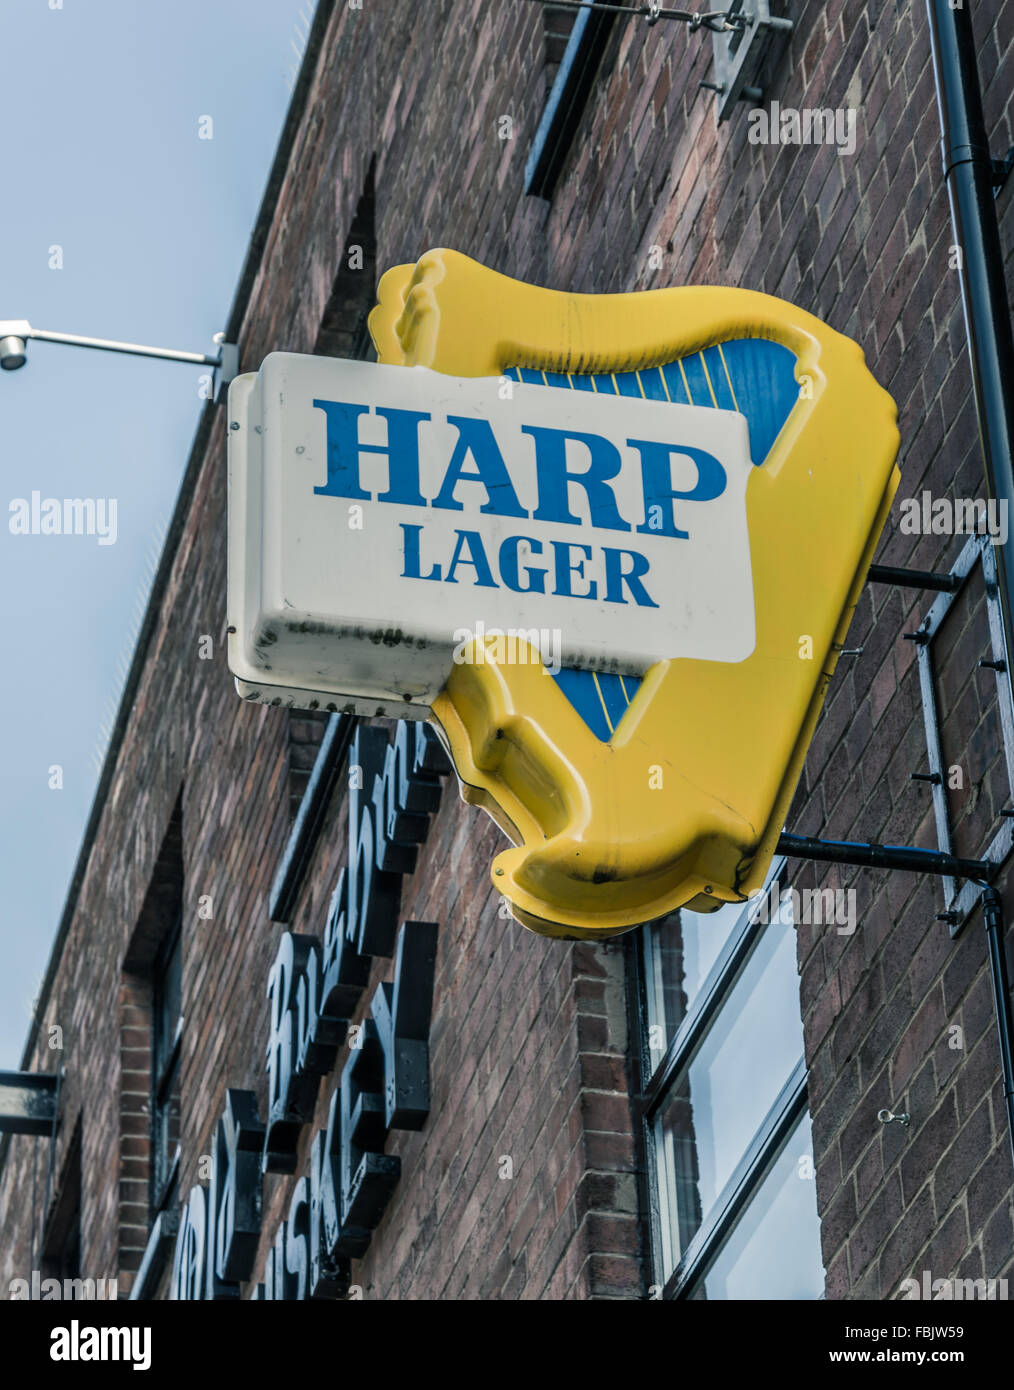 An old Harp Lager beer sign on a Belfast pub. - Stock Image